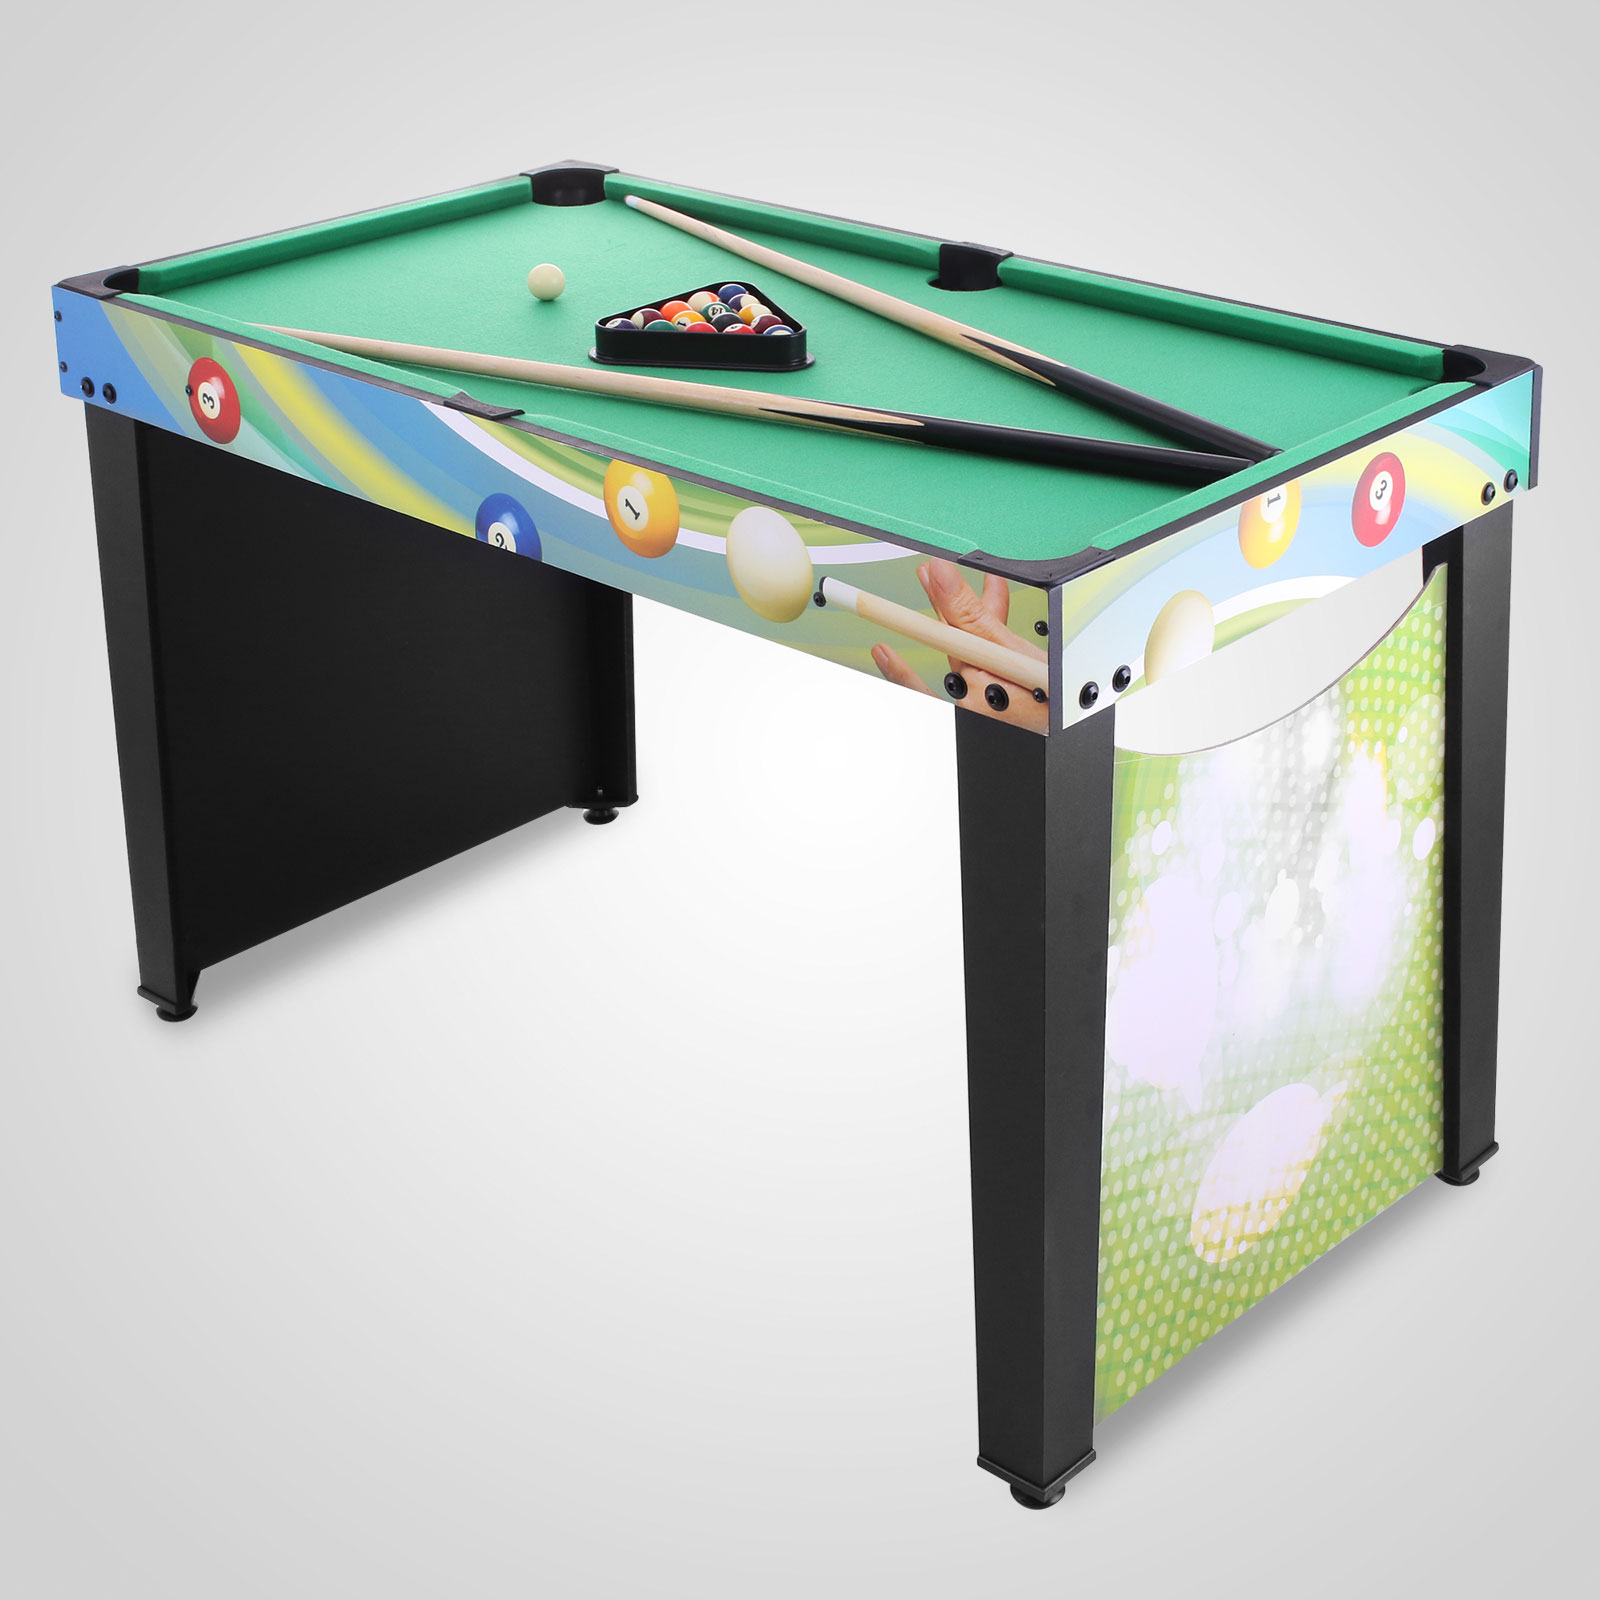 4ft 12 in 1 multi games football pool air hockey ping pong for 12 in one multi game table